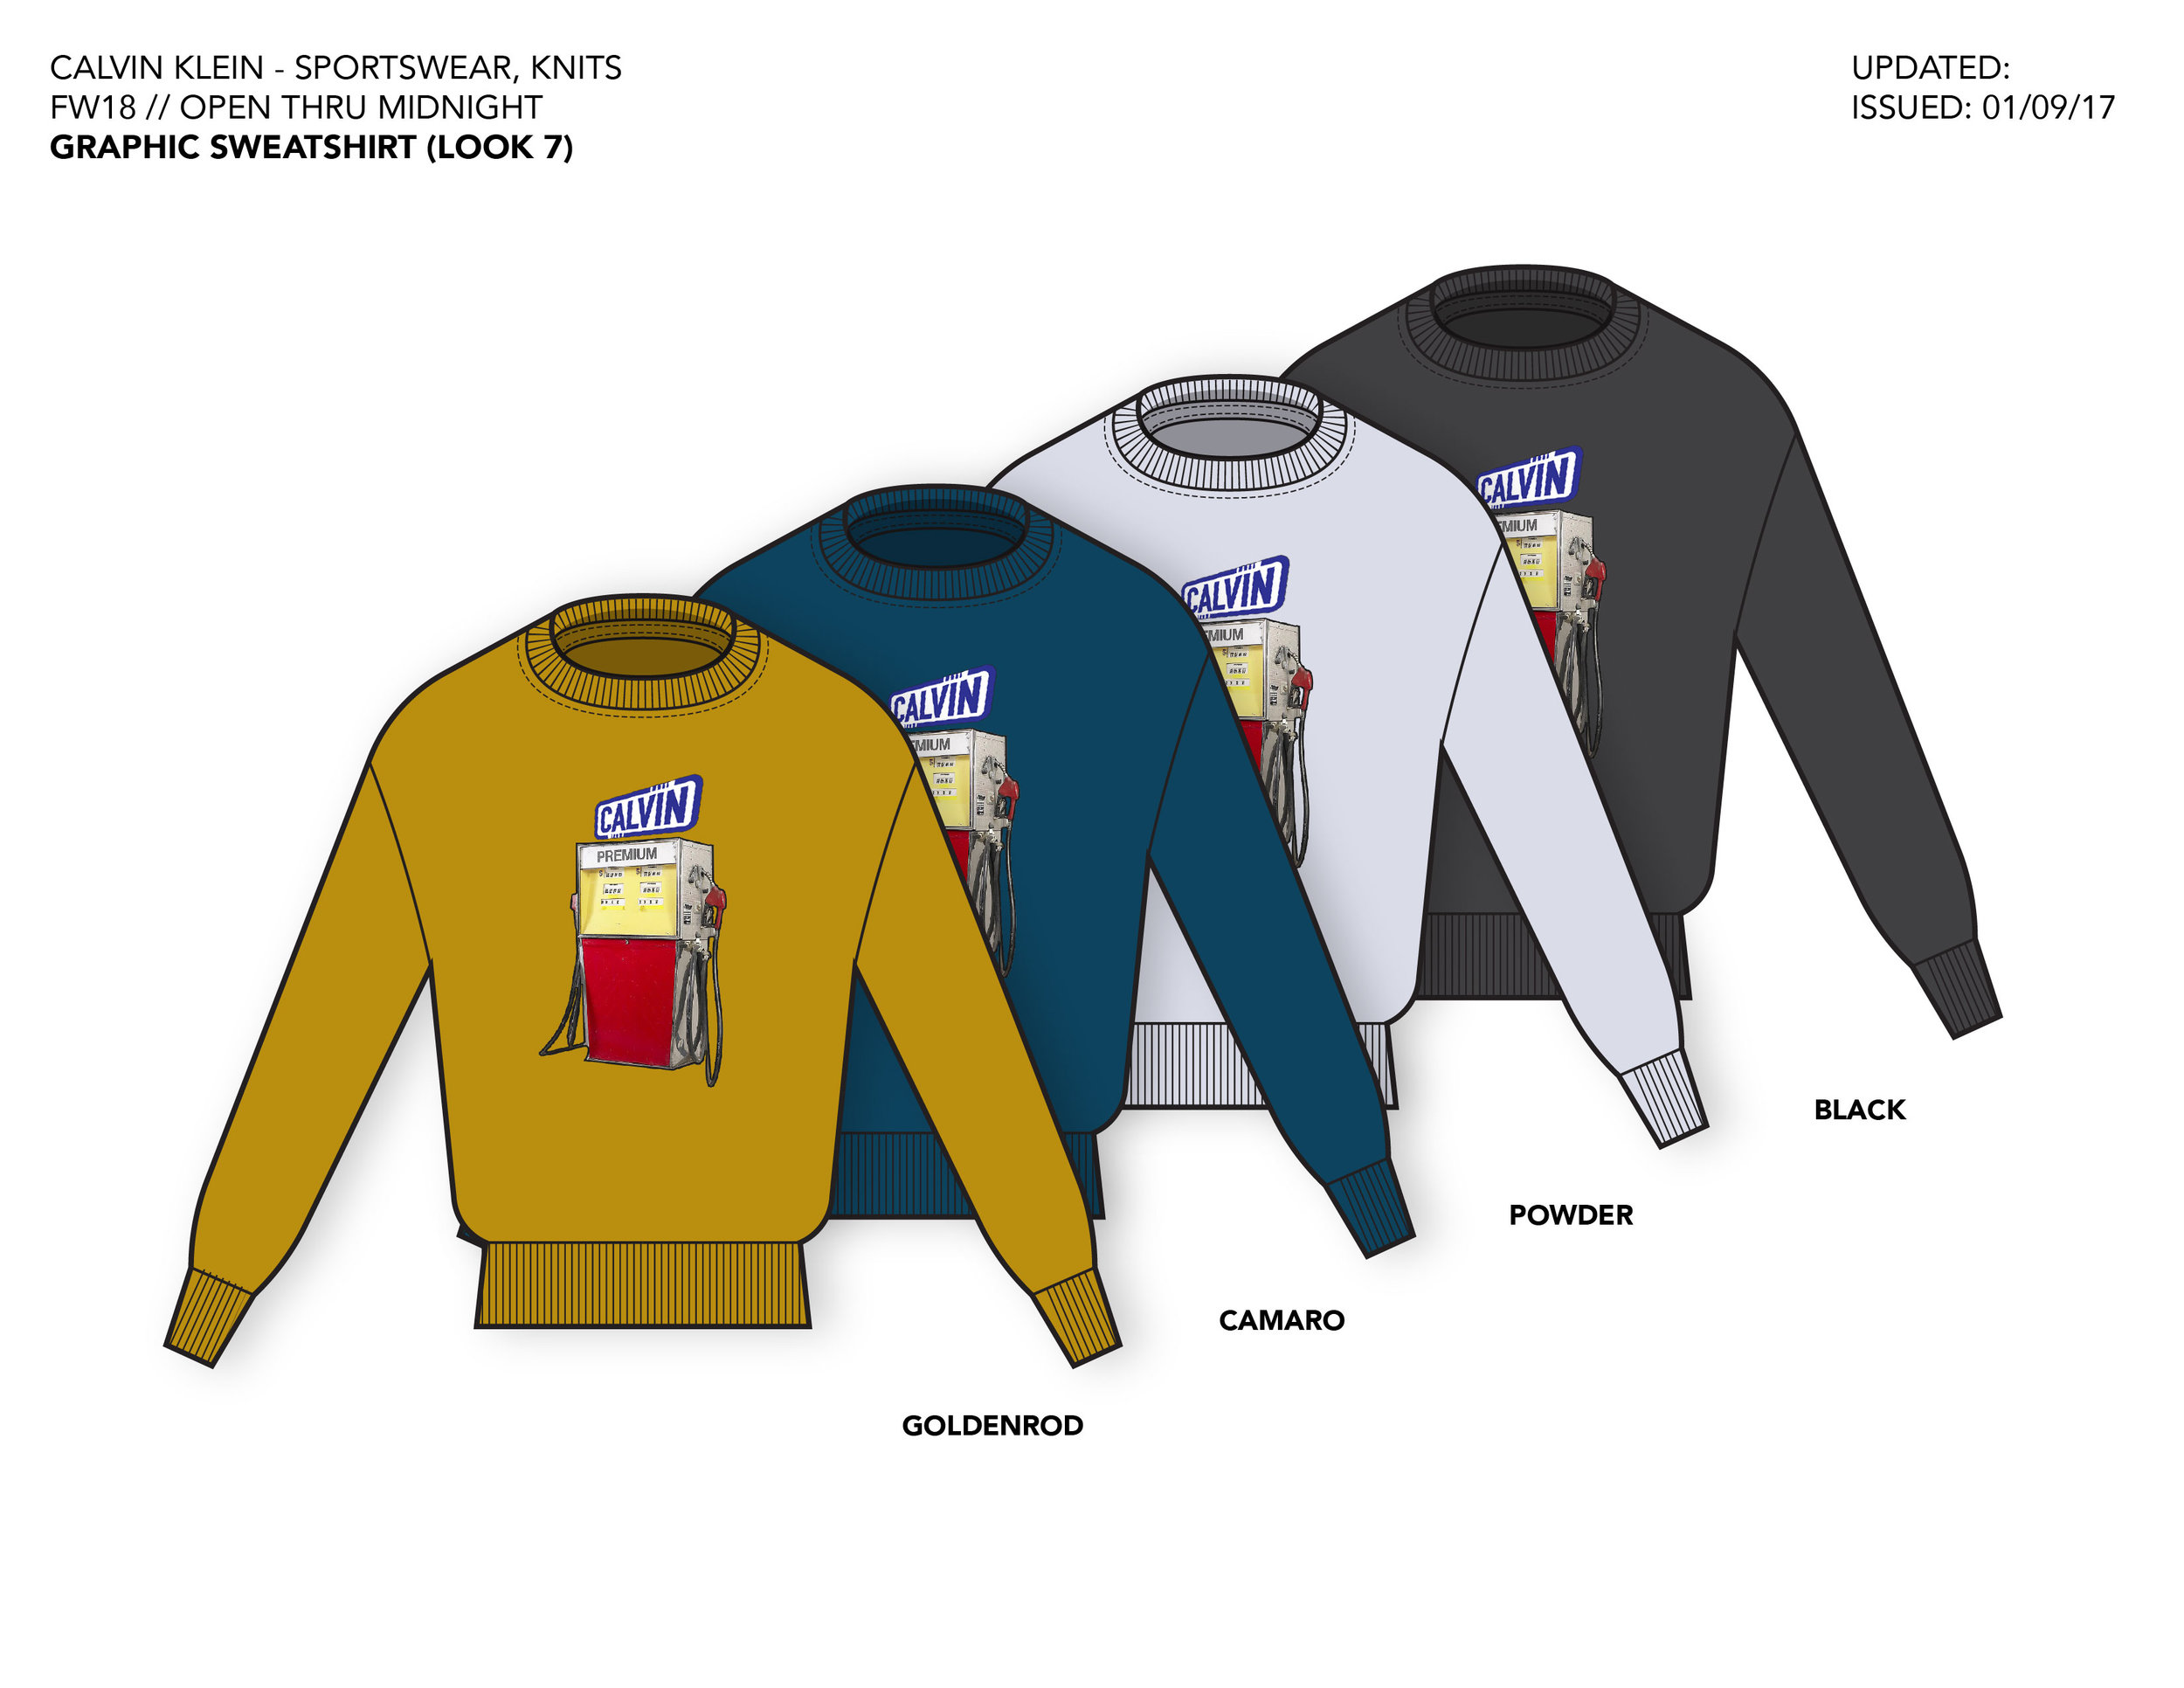 LOOK 7 - GRAPHIC SWEATSHIRT.jpg